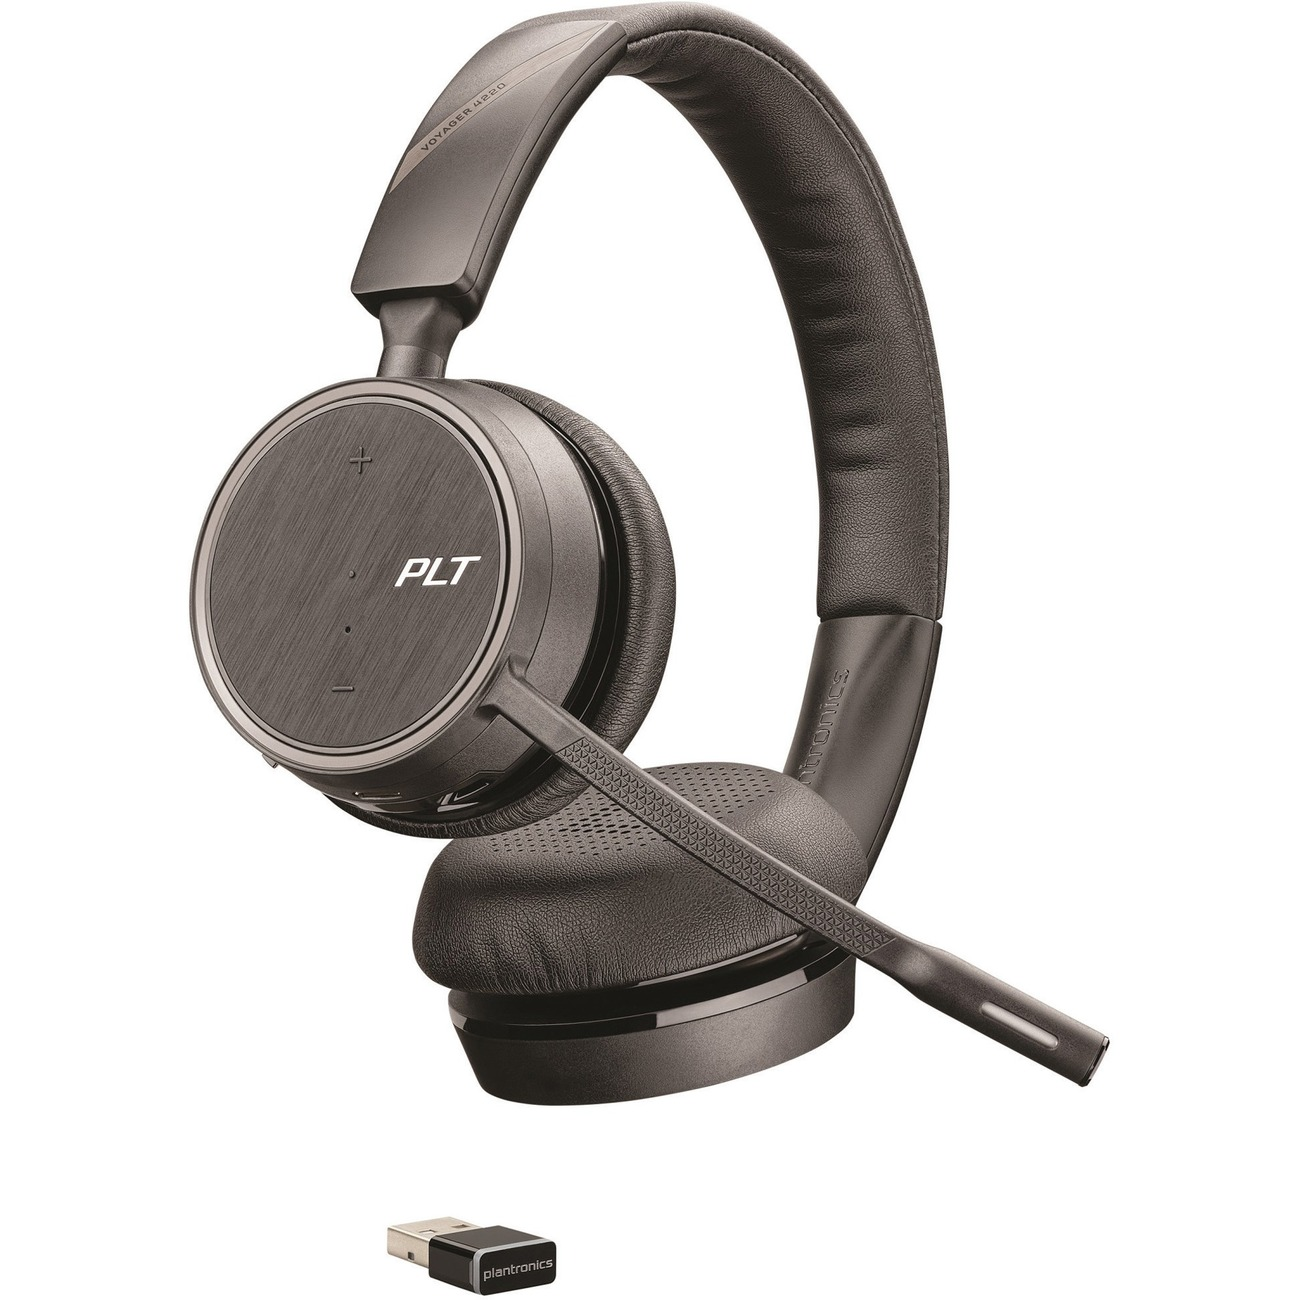 Plantronics Voyager 4200 UC Series Bluetooth Headset - Stereo - Wireless -  Bluetooth - 98 4 ft - 32 Ohm - 20 Hz - 20 kHz - Over-the-head - Binaural -